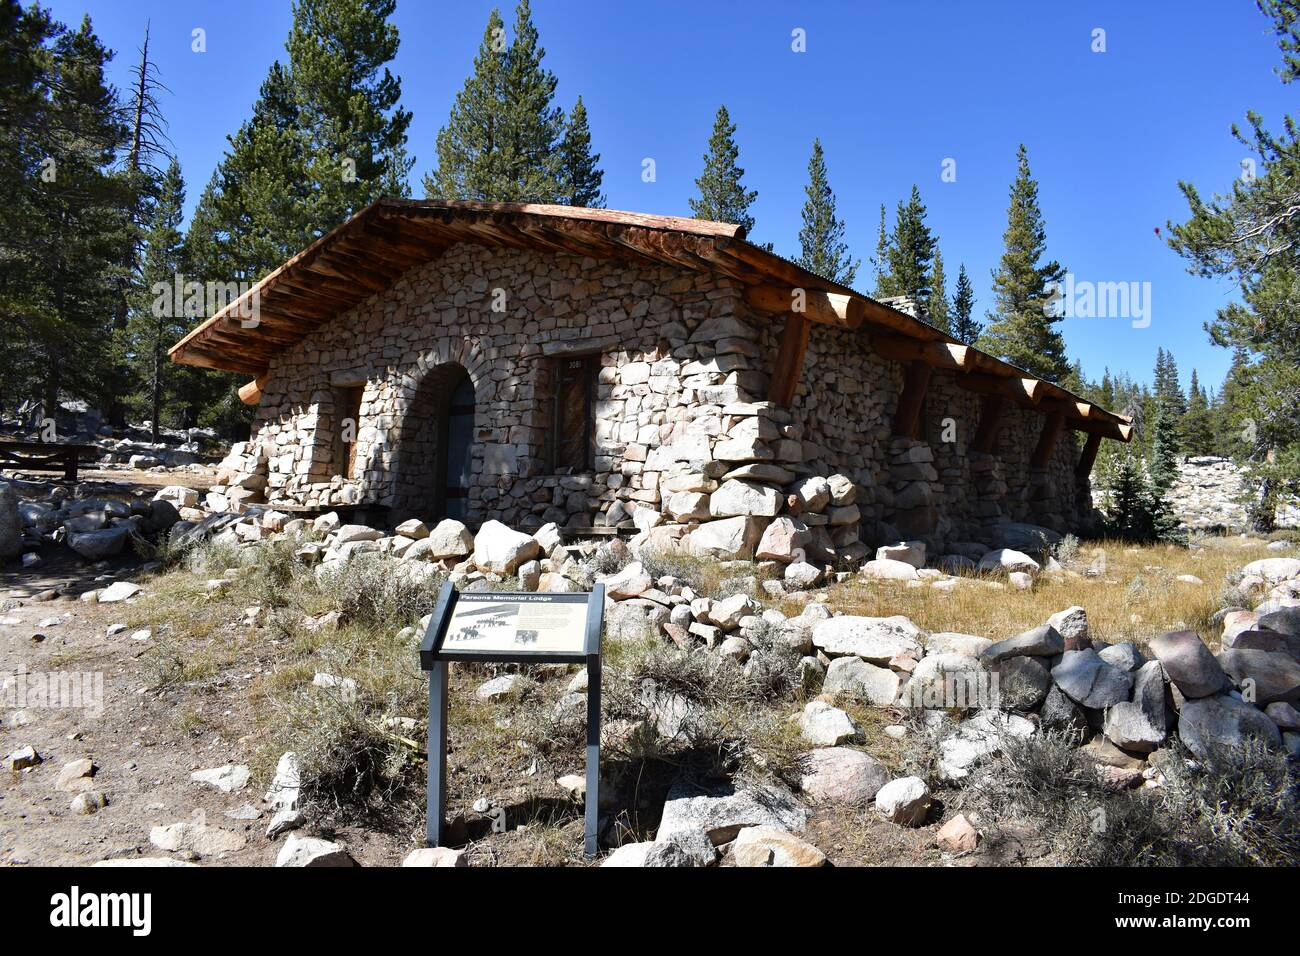 Parsons Lodge, A stone and wooden hut structure in Tuolumne Meadows, Yosemite National Park, USA. A sign with information for visitors stands outside. Stock Photo